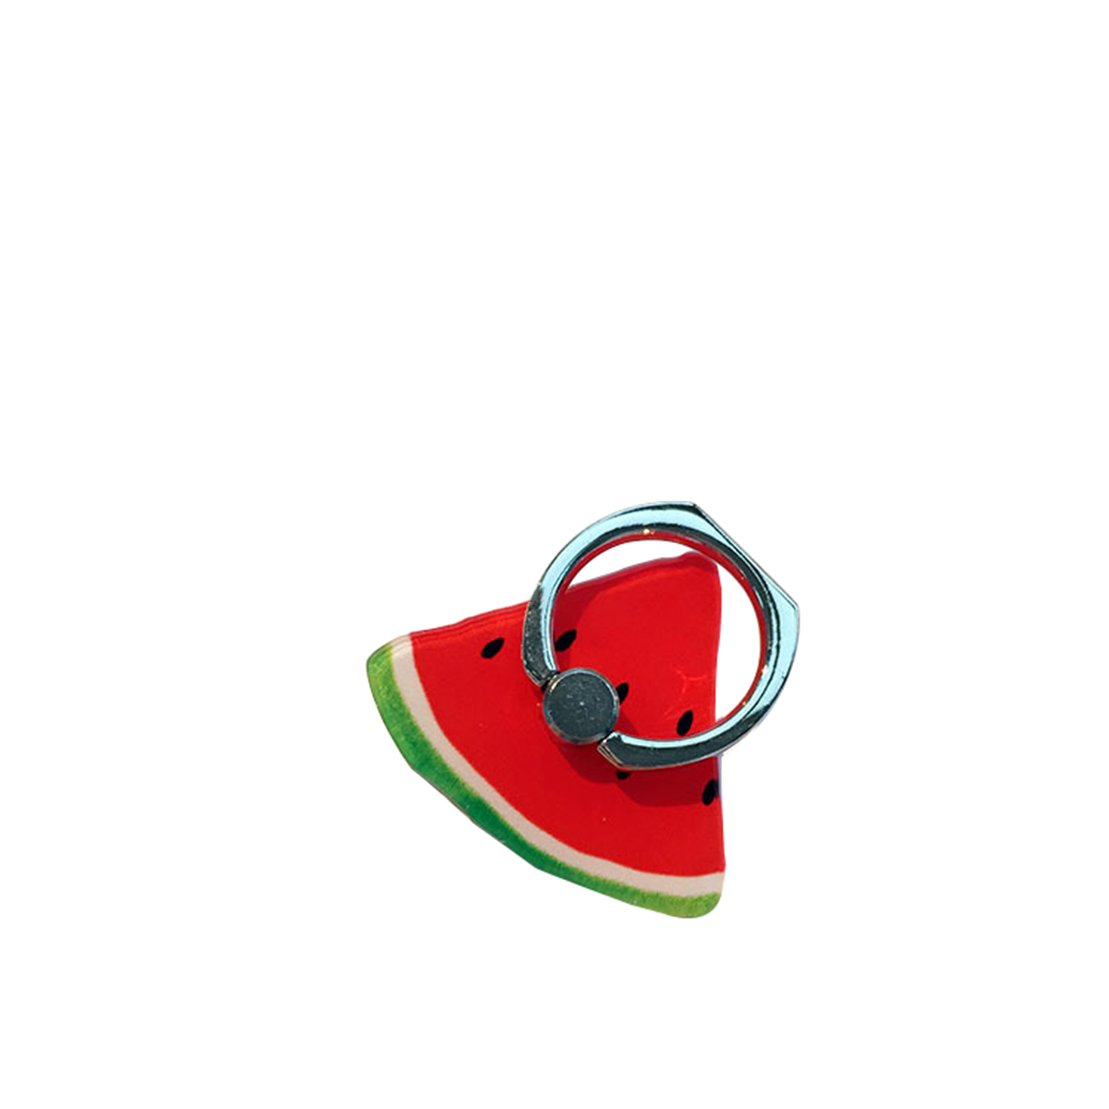 Ayiqi Cell Phone Holder Universal Rotation Summer Fruit Phone Grip kickstand Smartphone Cell Phone Ring Holder for All Cell Phones iPad Color 1